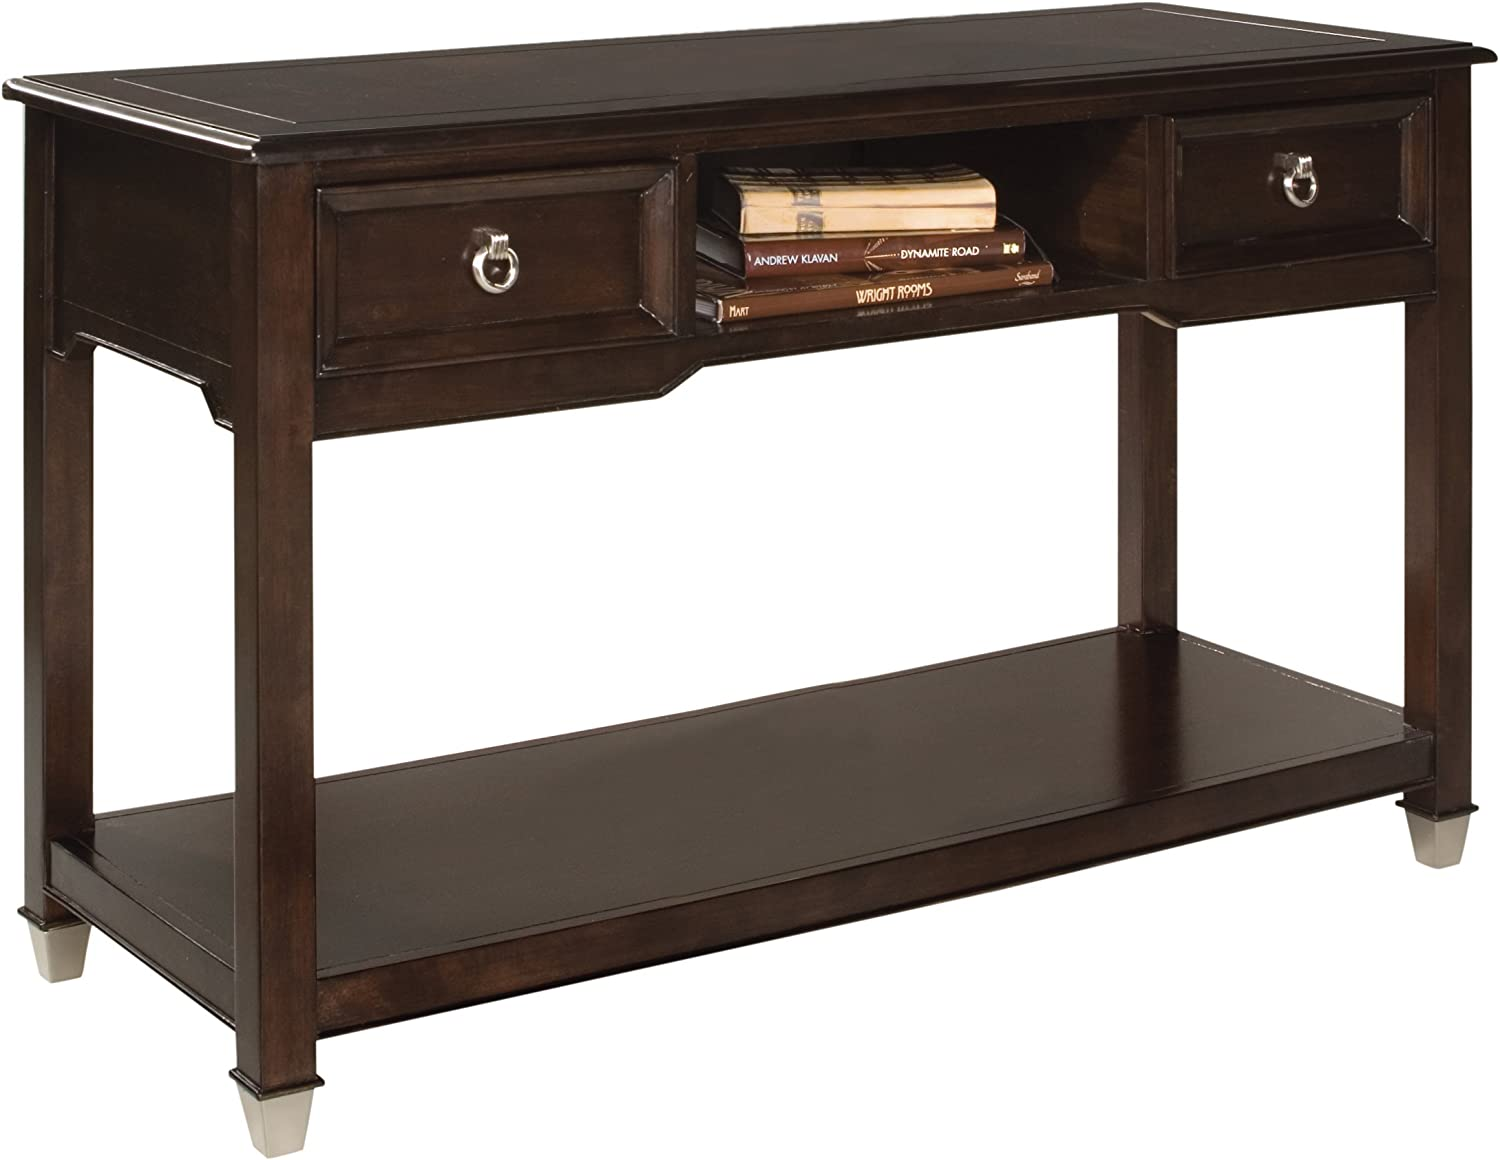 Magnussen Darien Wood Rectangular Sofa Table